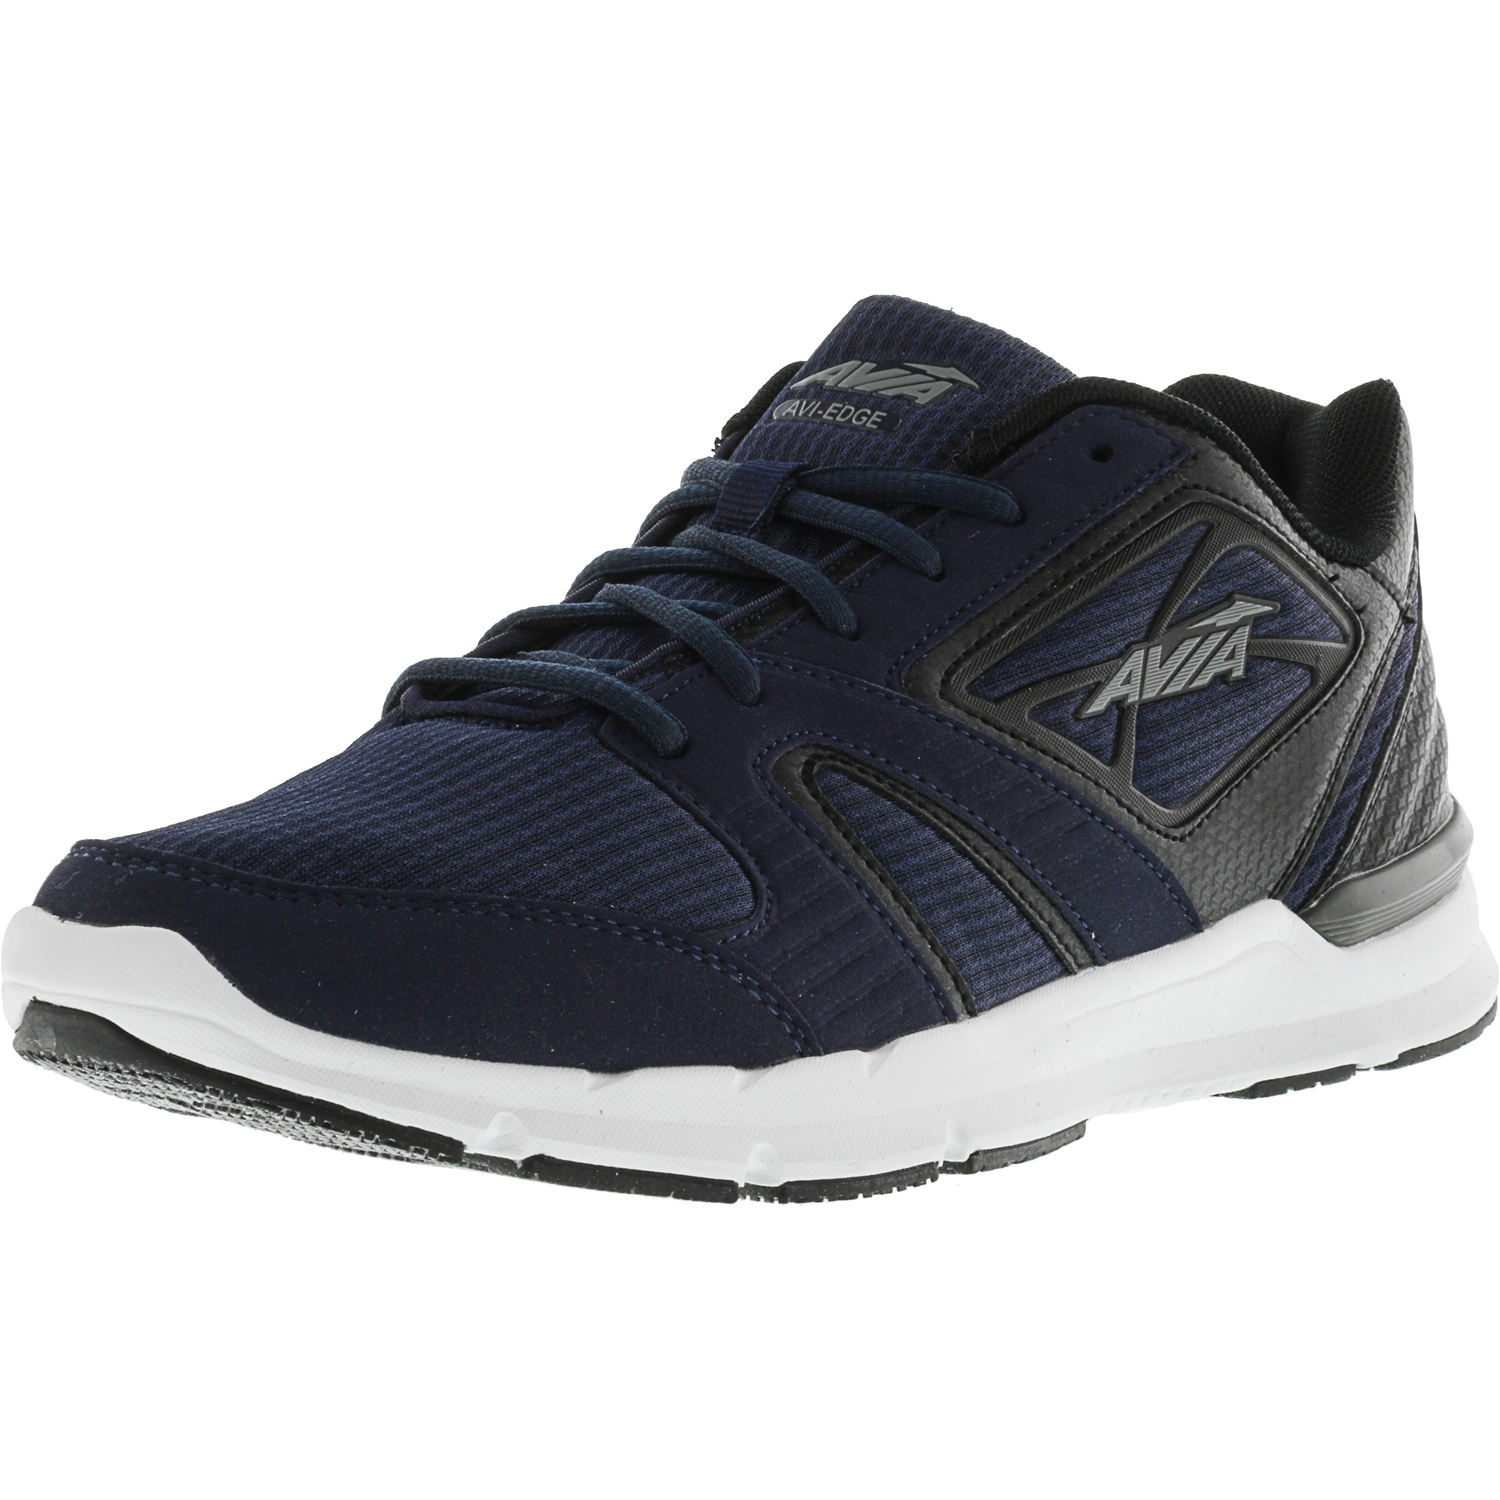 Avia Men's Avi-Edge True Navy   Black Frost Grey Ankle-High Running Shoe 9M by Avia